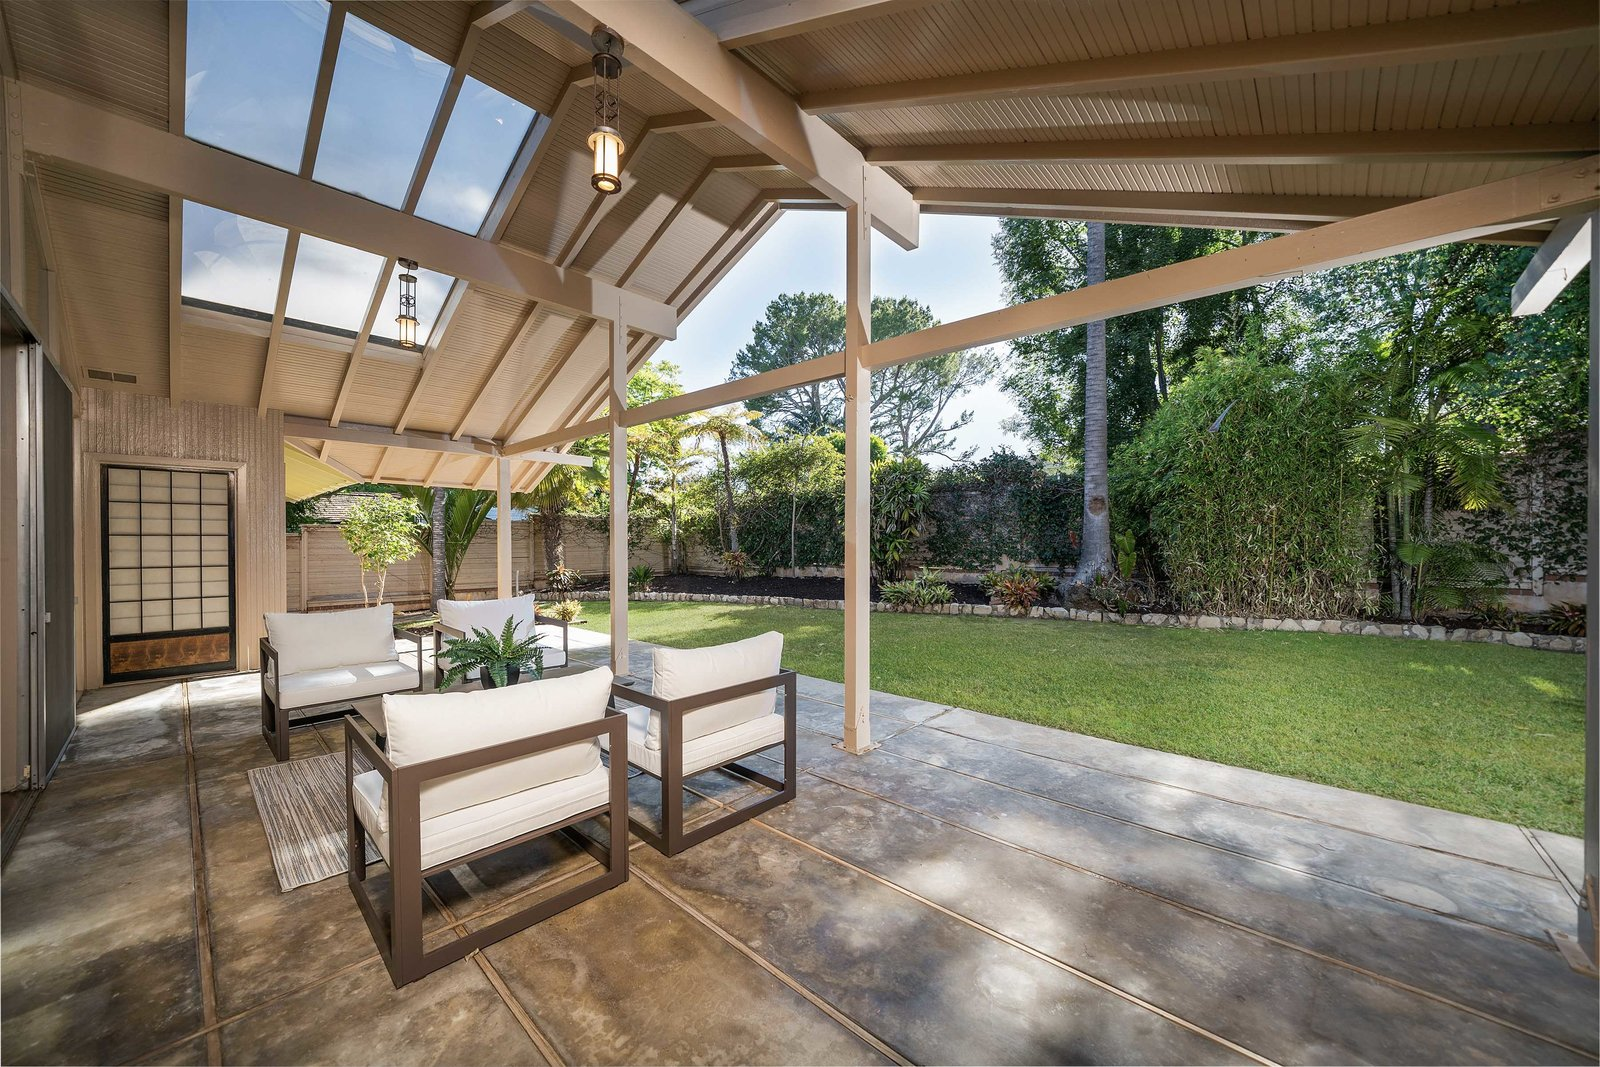 The Golden Girls home patio